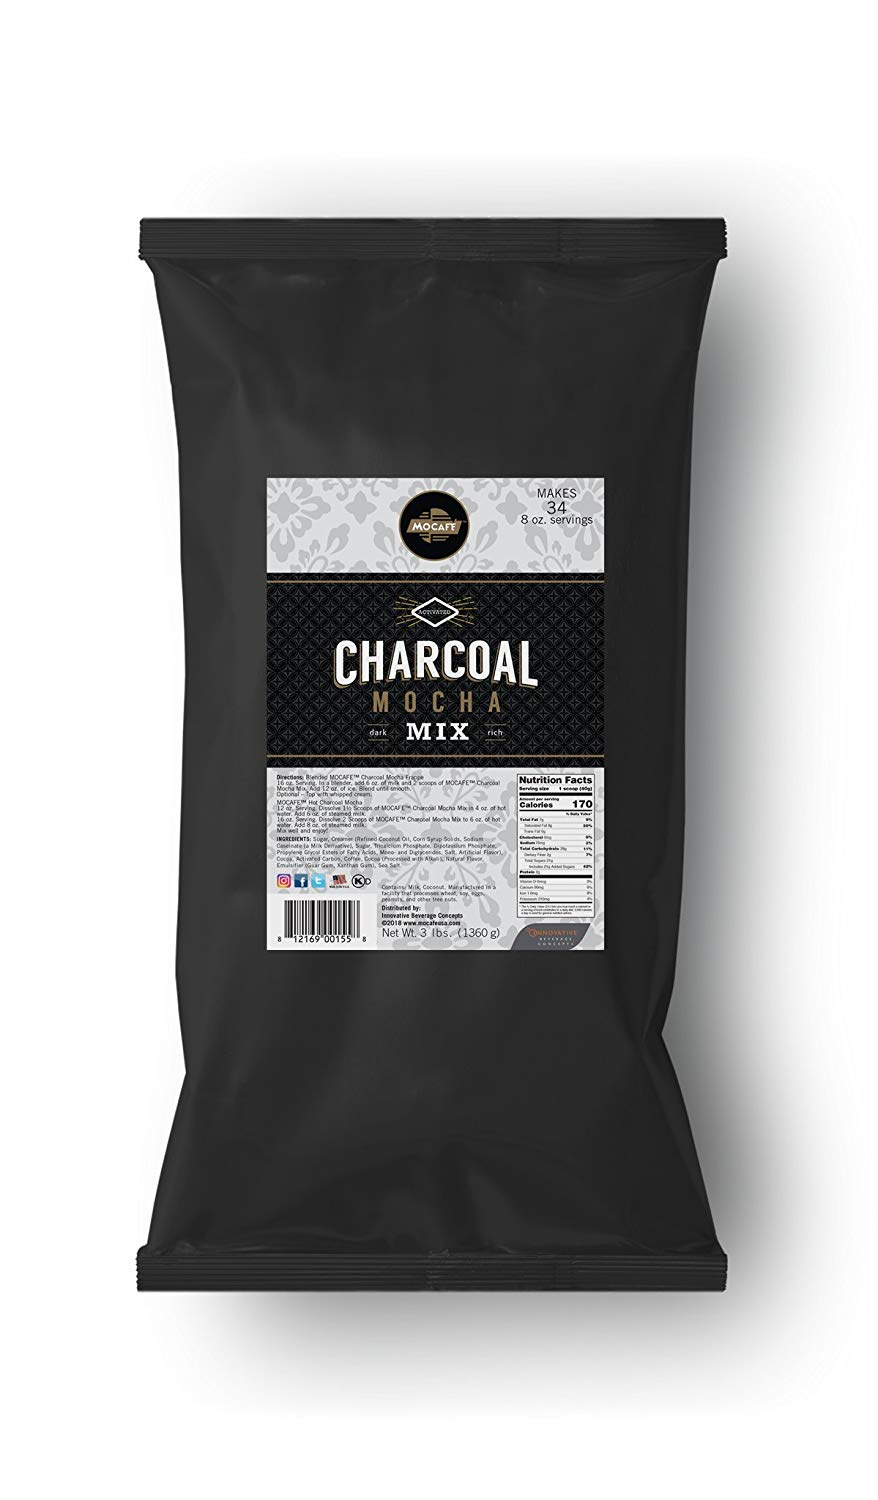 MOCAFE Charcoal Mocha Mix, 3-Pound (4 Count) Instant Frappe Mix, Coffee House Style Blended Drink Used in Coffee Shops